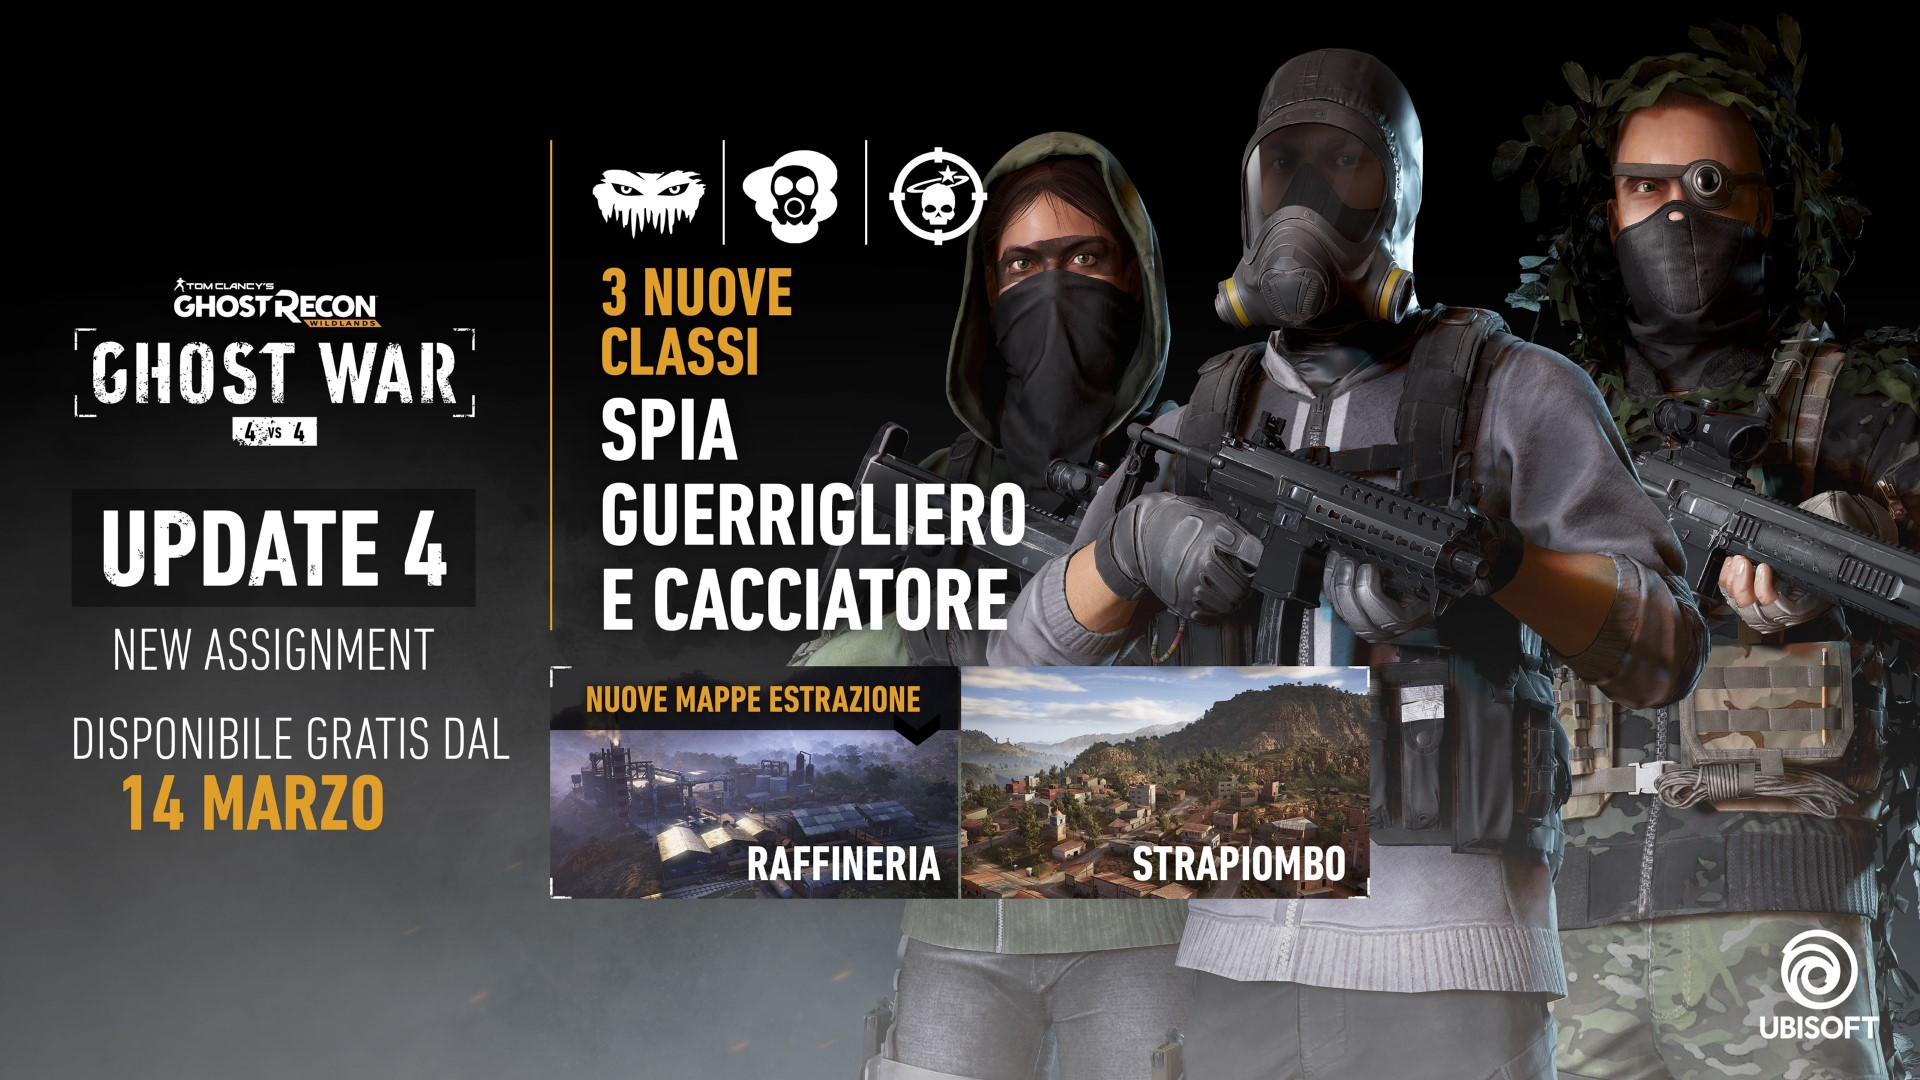 Ghost Recon Wildlands New Assignment